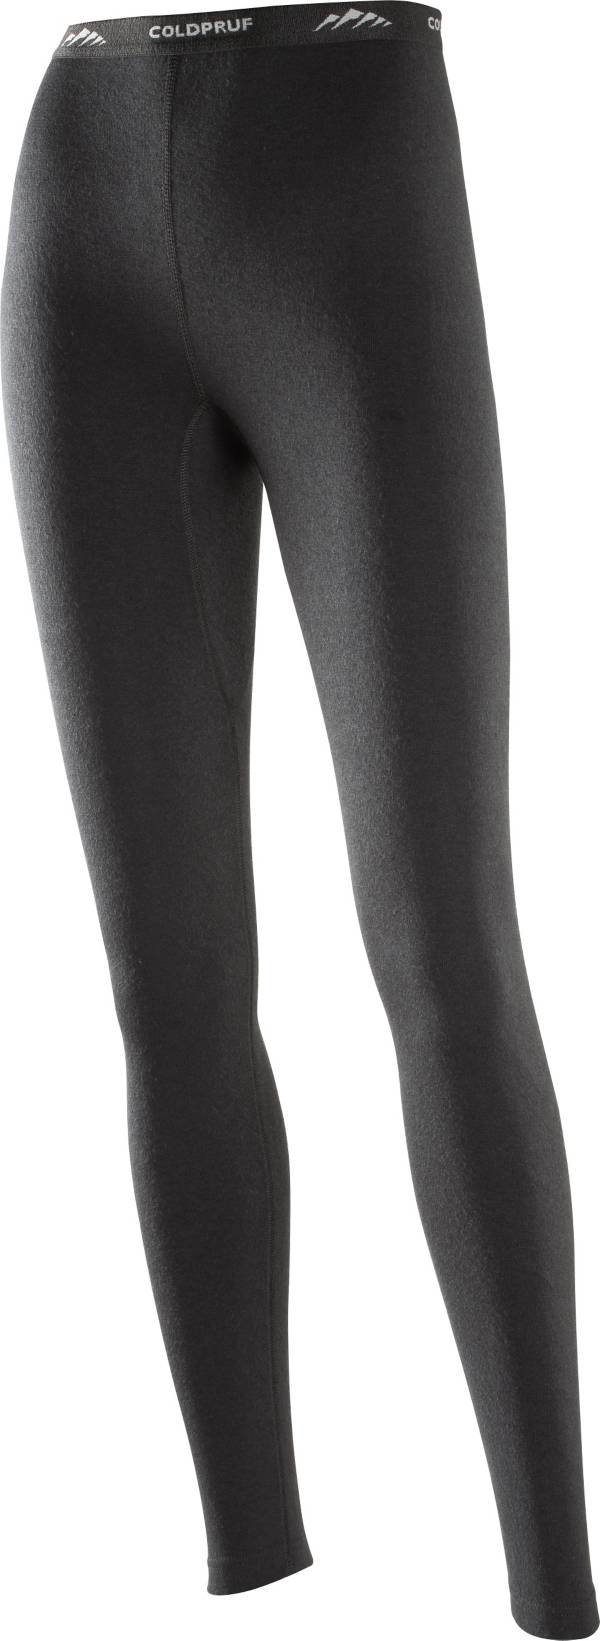 ColdPruf Women's Basic Base Layer Pants product image